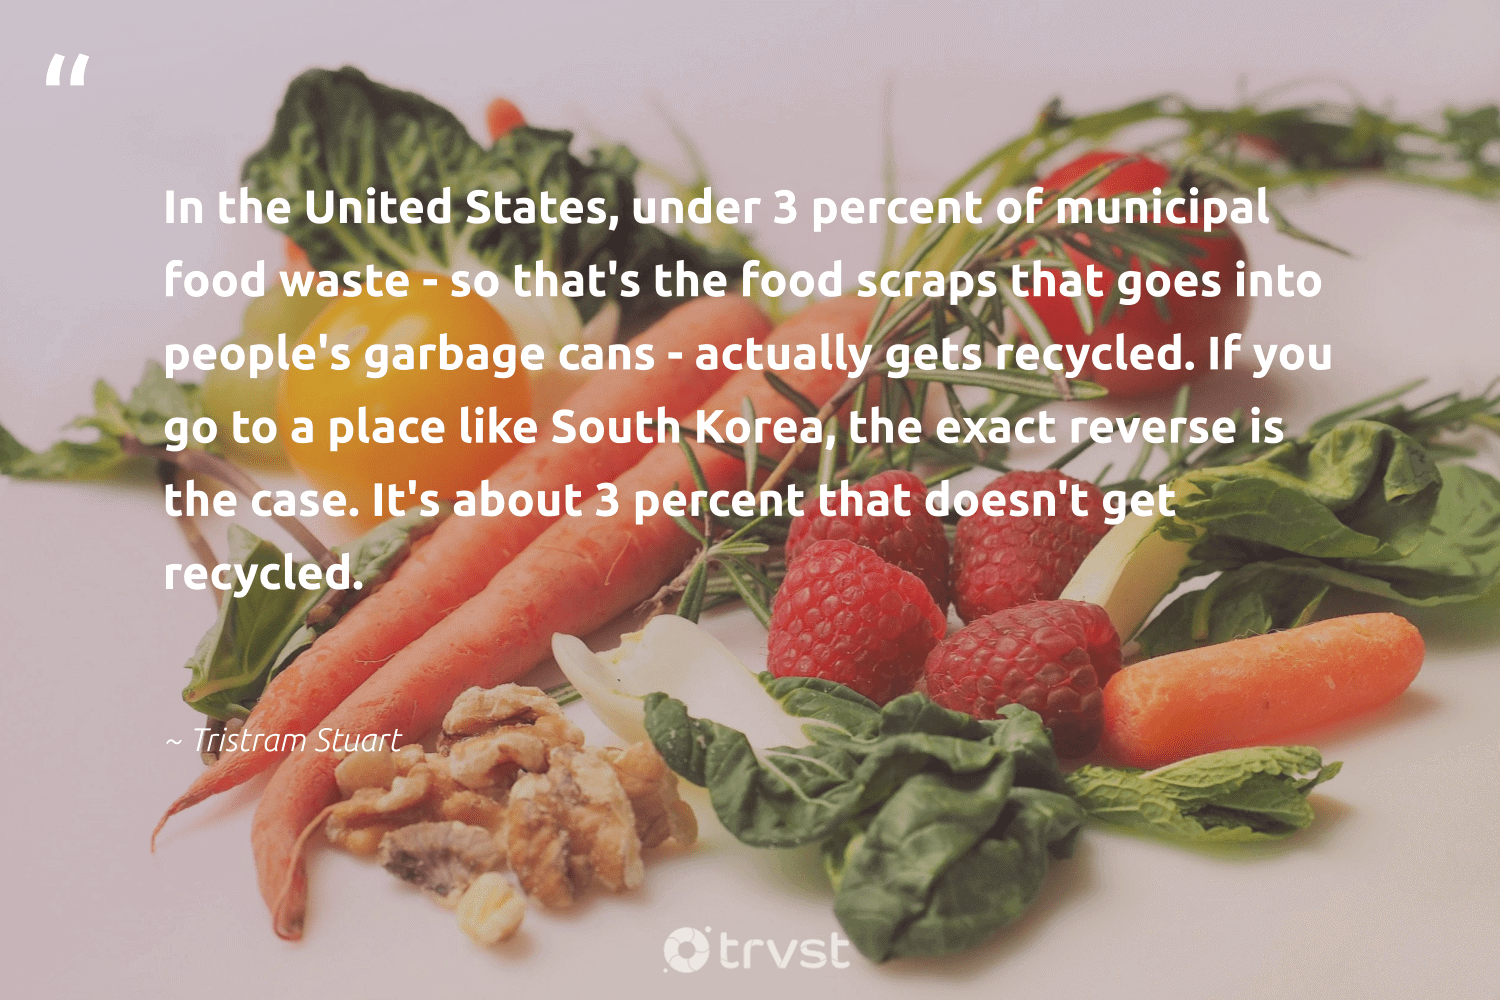 """""""In the United States, under 3 percent of municipal food waste - so that's the food scraps that goes into people's garbage cans - actually gets recycled. If you go to a place like South Korea, the exact reverse is the case. It's about 3 percent that doesn't get recycled.""""  - Tristram Stuart #trvst #quotes #foodwaste #waste #garbage #recycled #food #savefood #dotherightthing #loveourplanet #takeaction #fighthunger"""